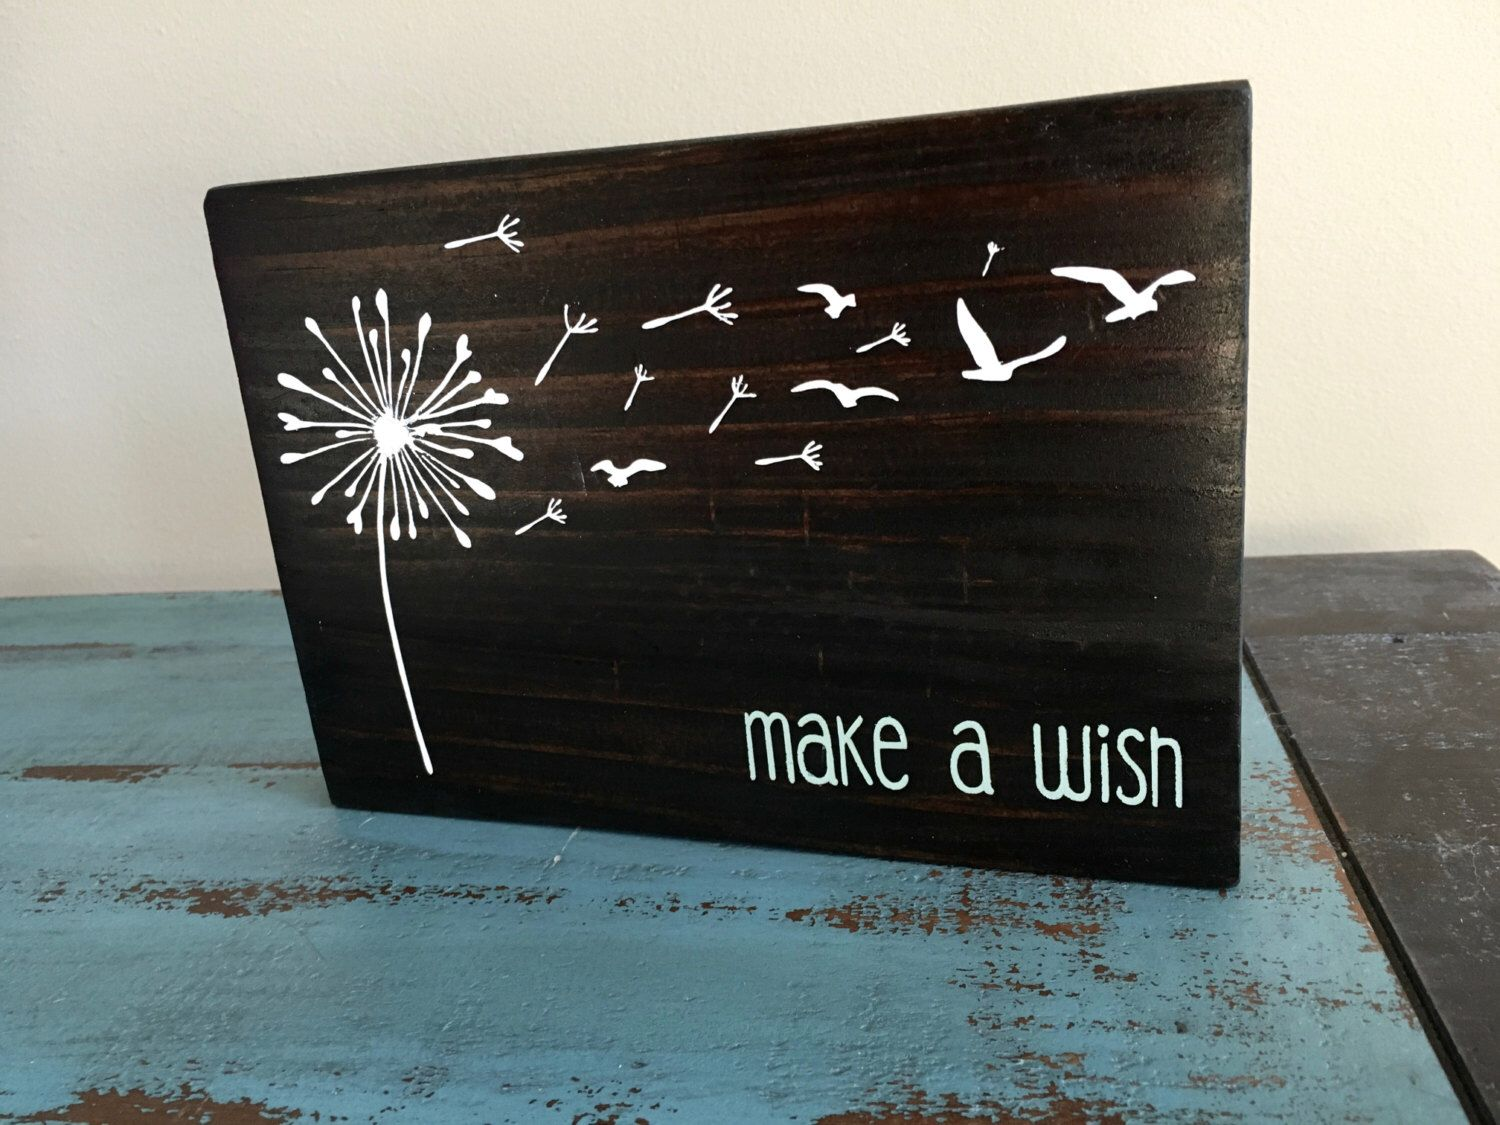 Wall Sign Decor Classy Rustic Hand Painted Make A Wish Dandelion Wood Signwall Decor Design Inspiration